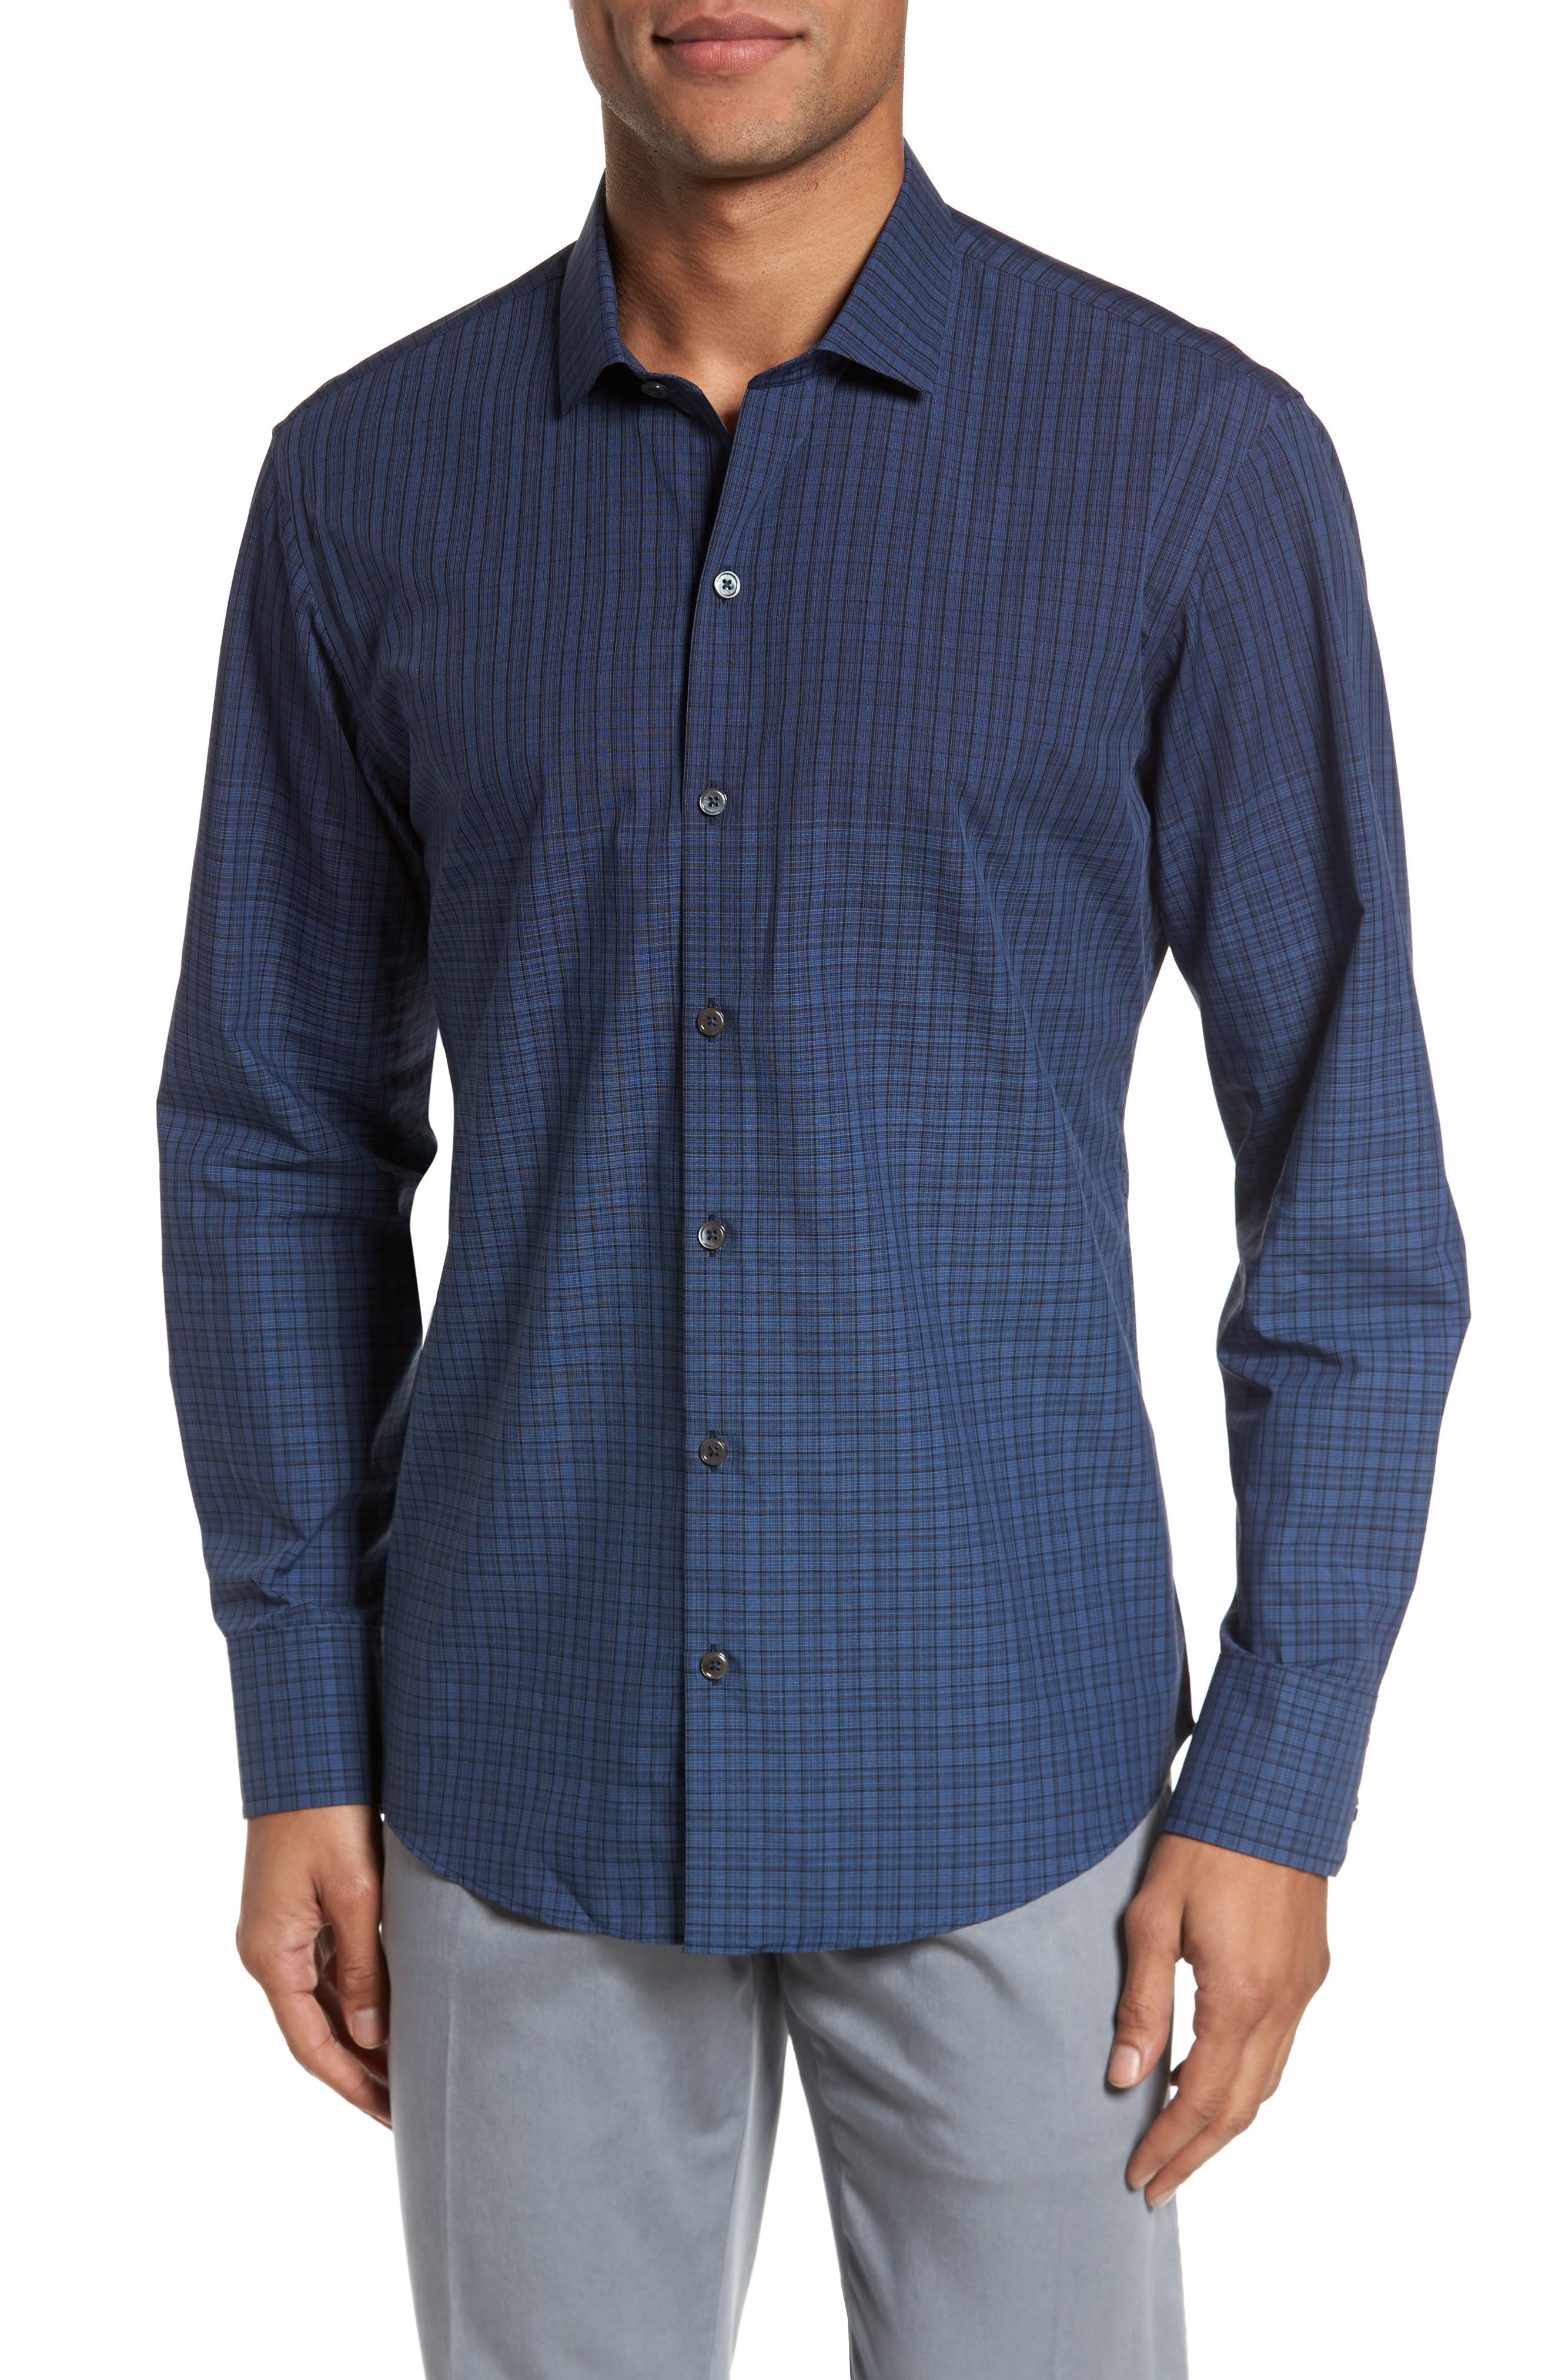 Main Image - Zachary Prell Wein Slim Fit Check Sport Shirt